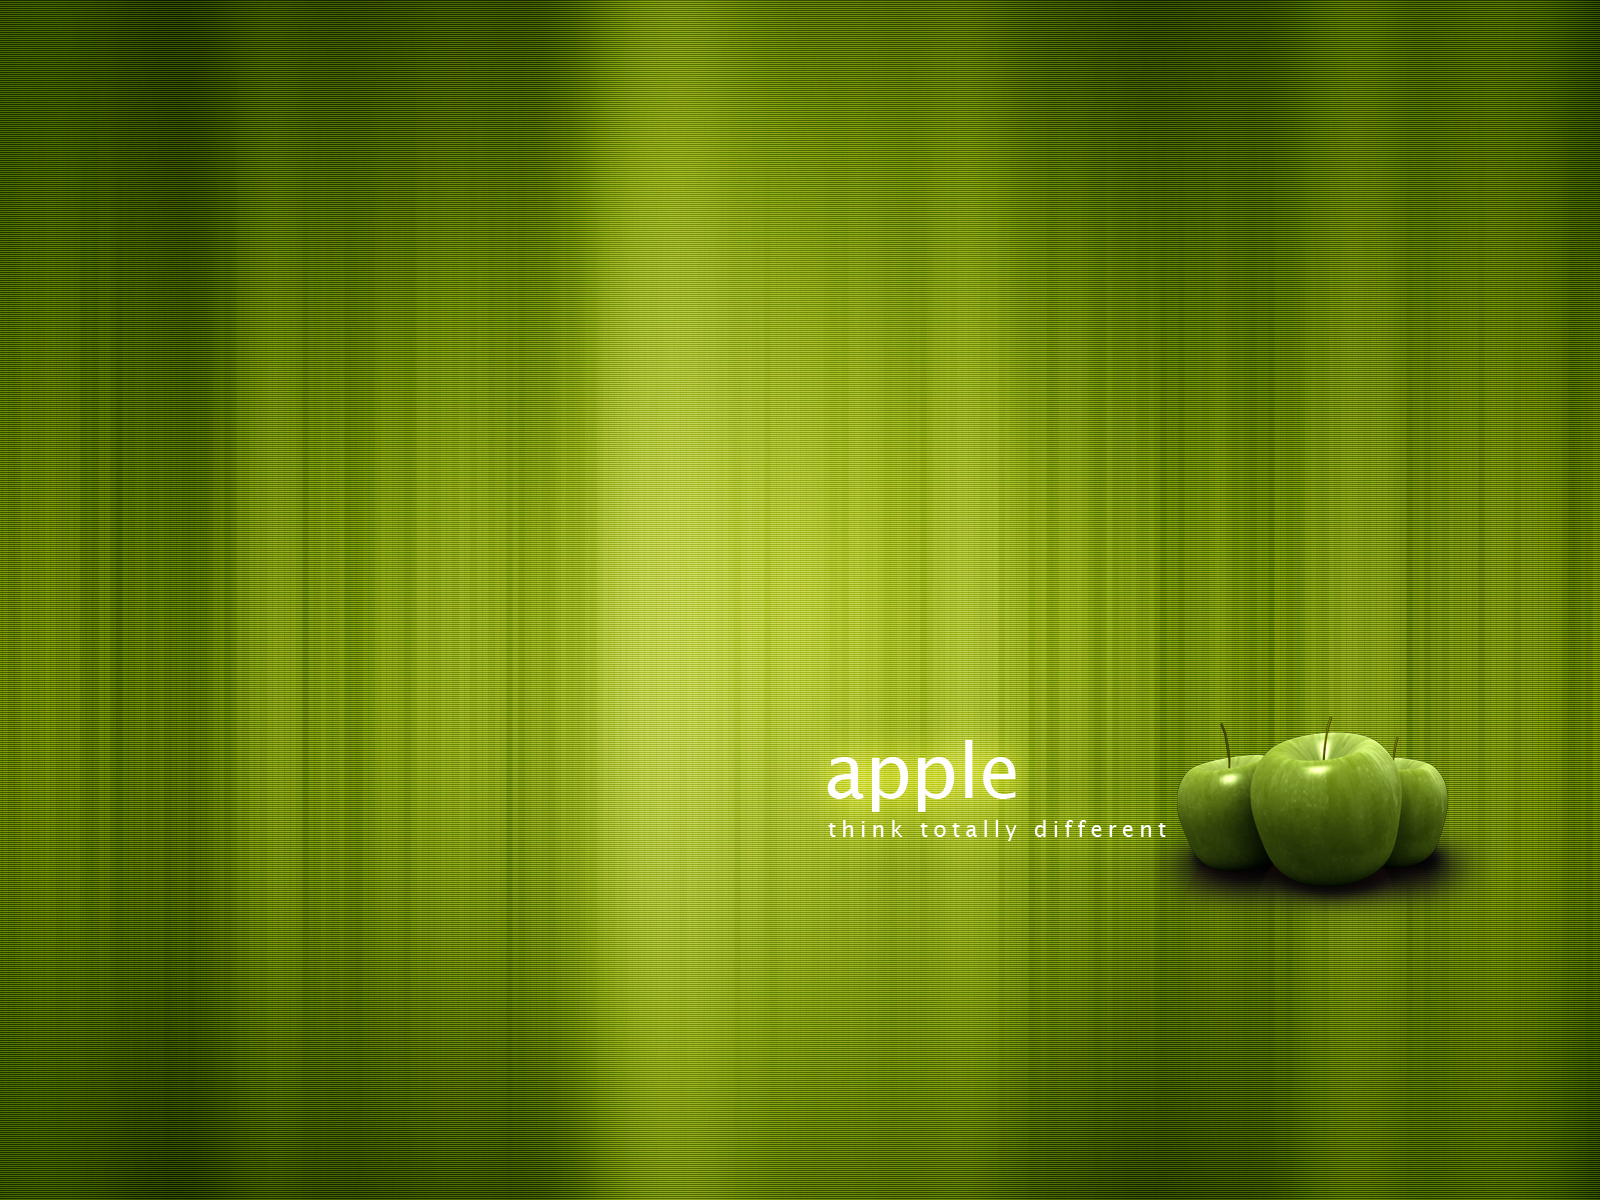 Apple-think totallyy different